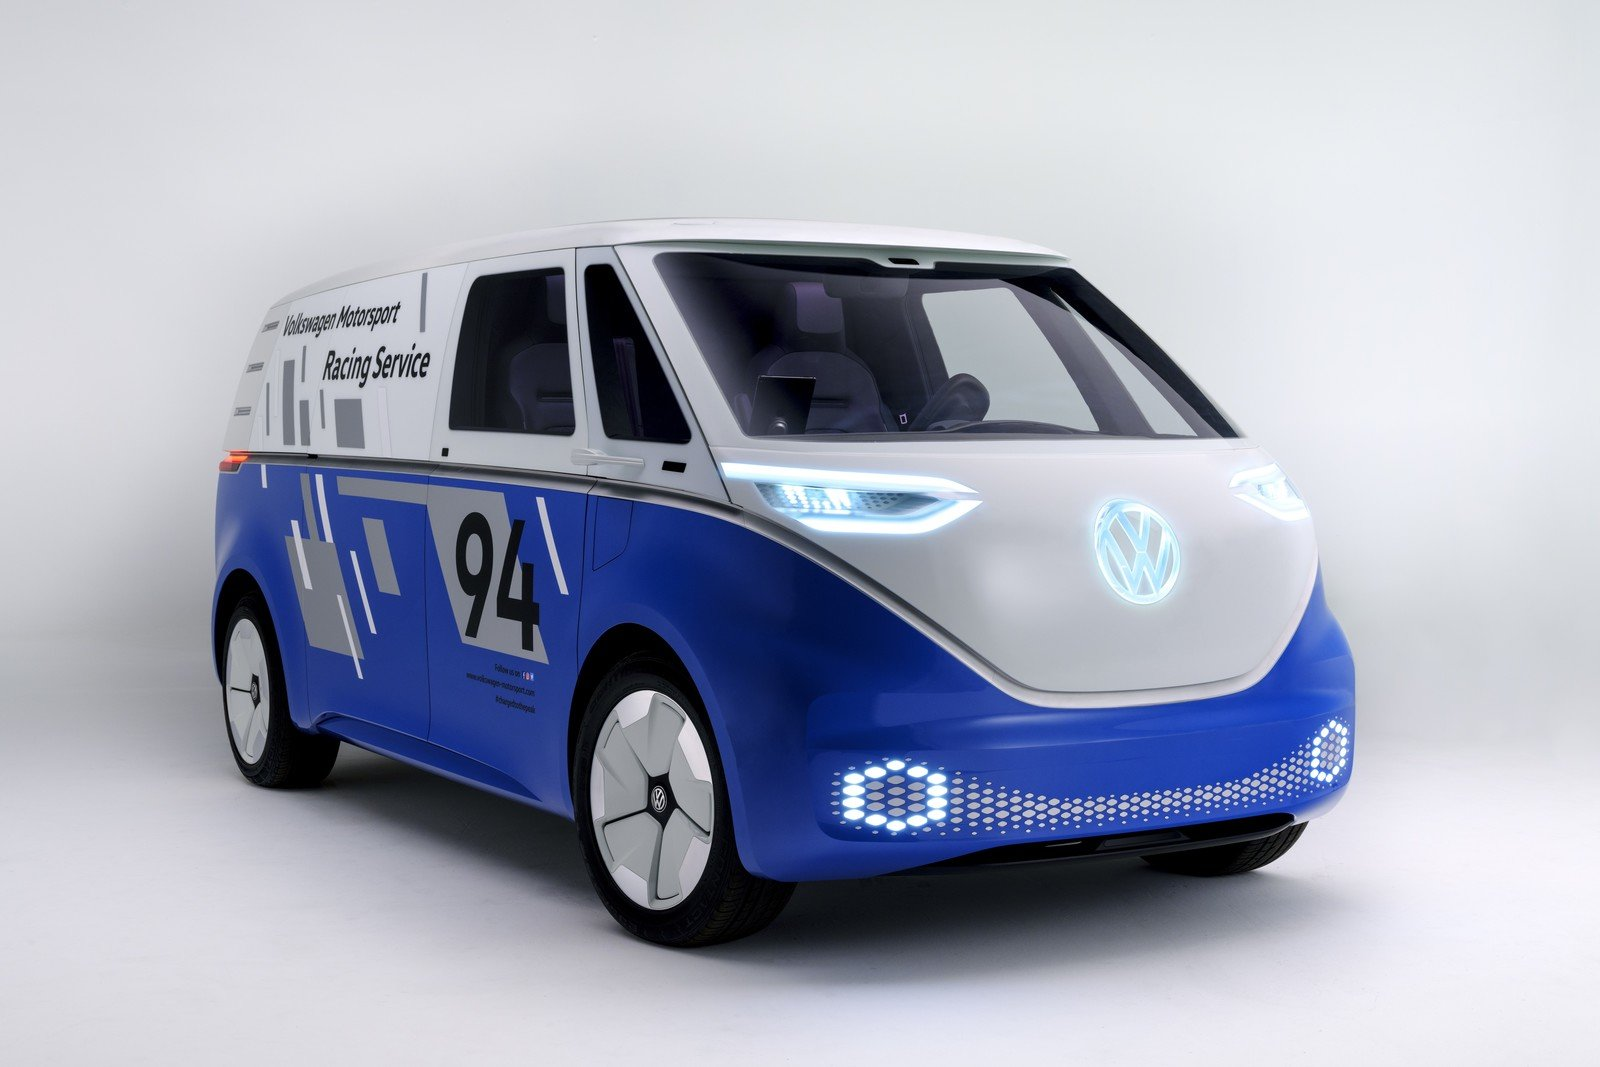 Moving Towards Electric Cars, Volkswagen Plans A 6% Cut Of